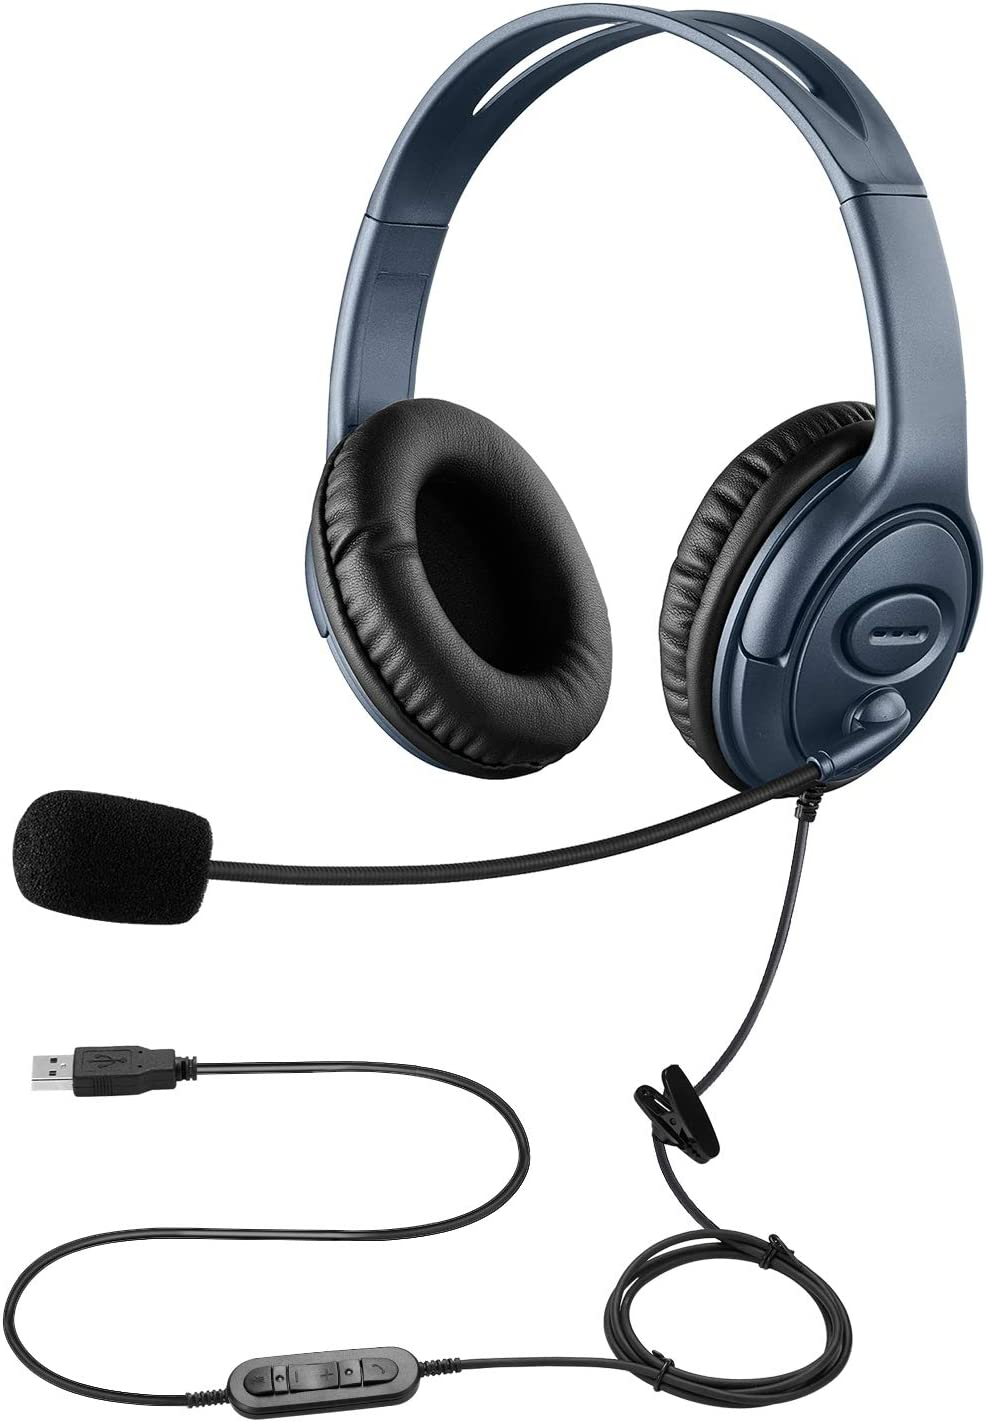 Jiade USB Headset with 2021 autumn and Choice winter new Noise Canceling for CallCenter Microphone